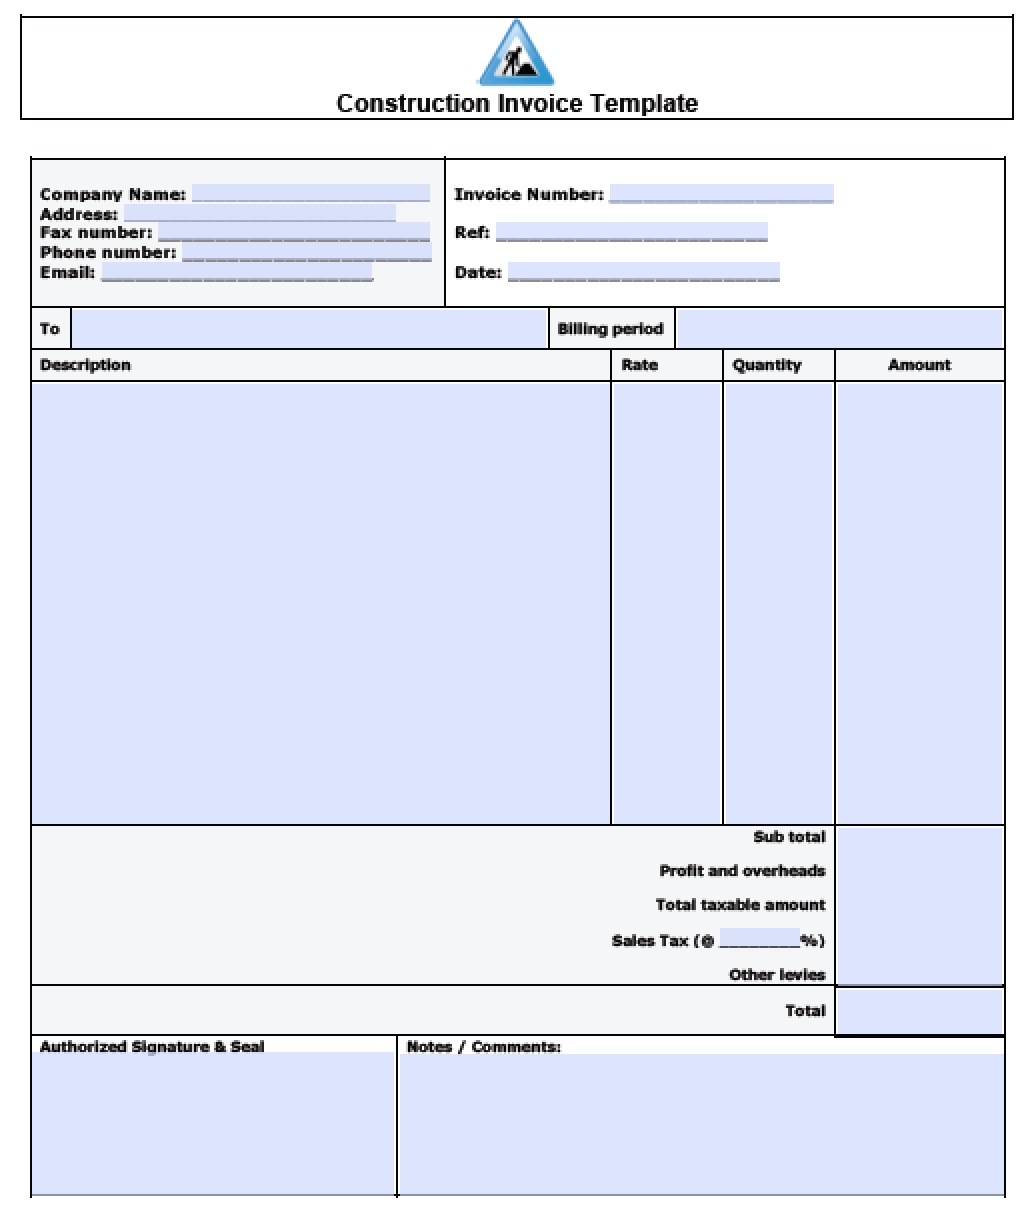 Free construction invoice template excel pdf word c wajeb Choice Image